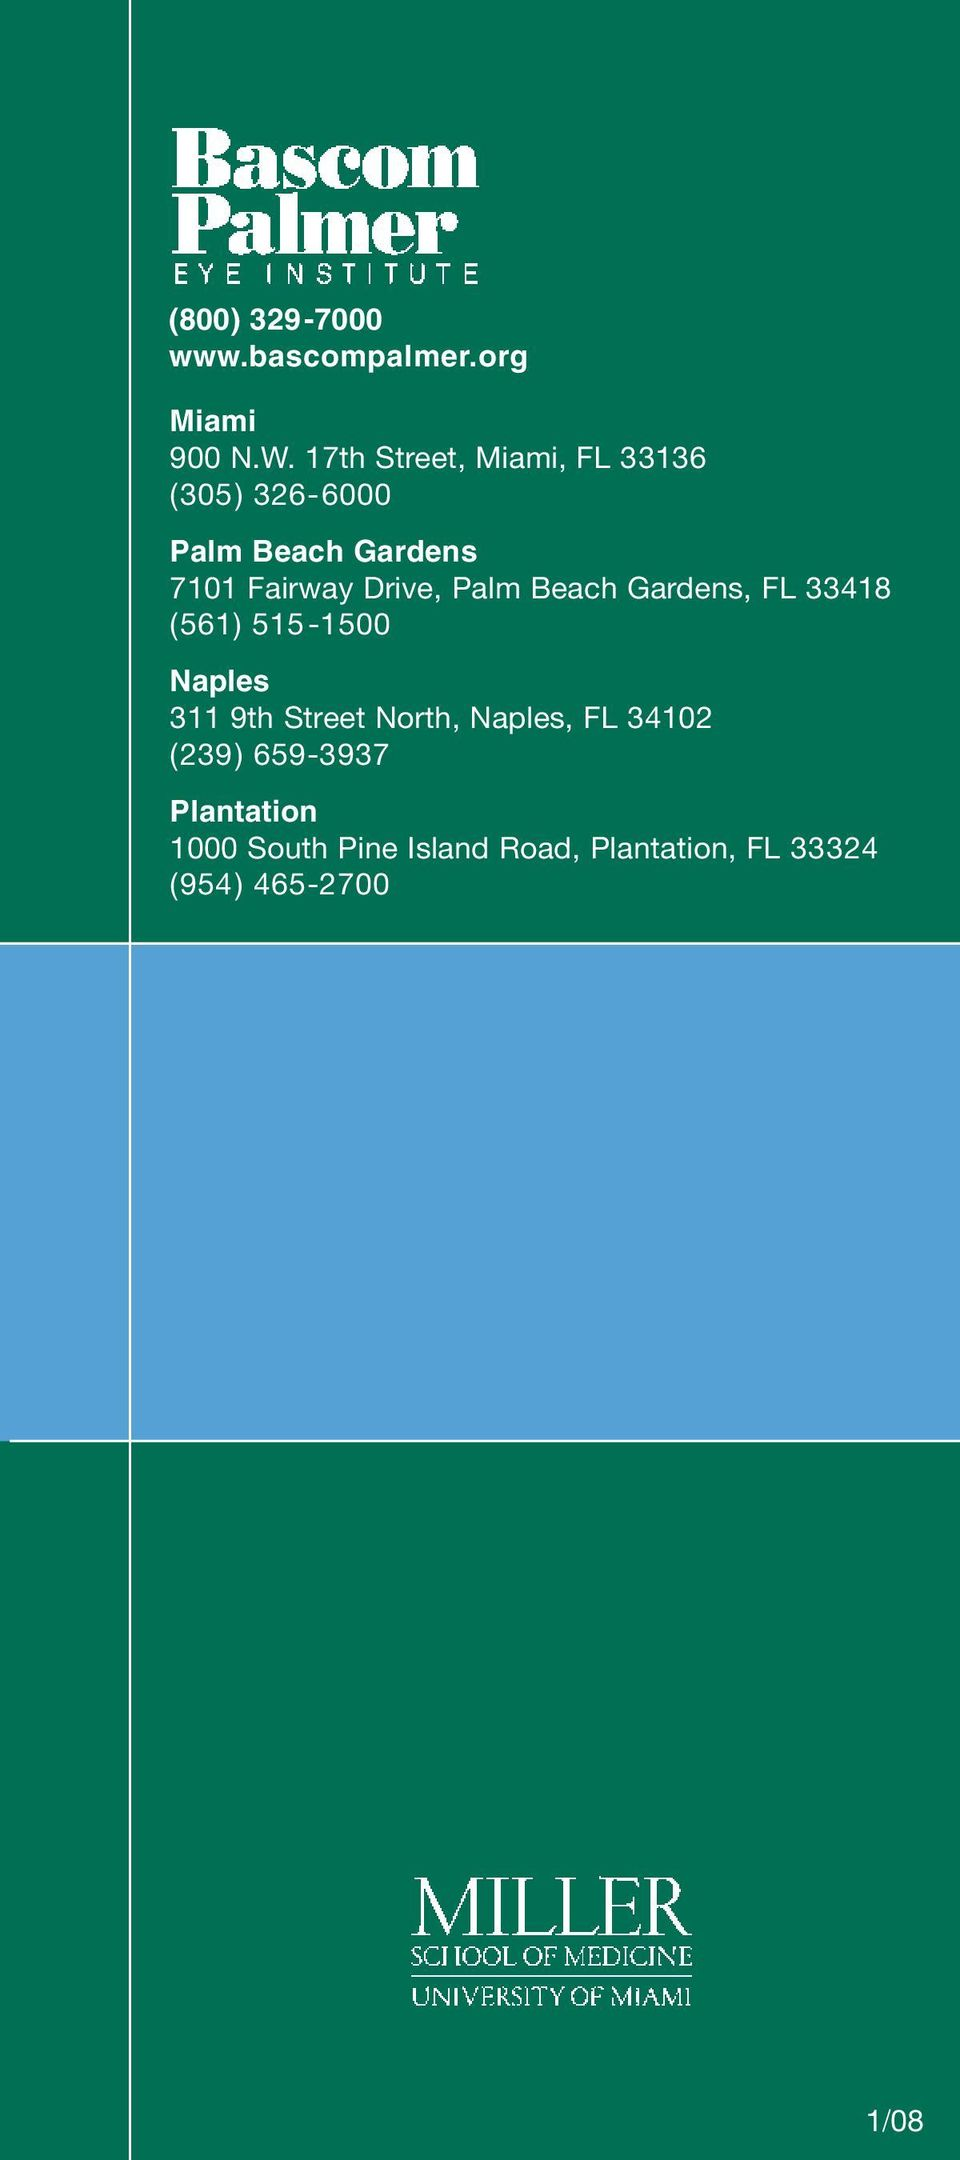 Drive, Palm Beach Gardens, FL 33418 (561) 515-1500 Naples 311 9th Street North,